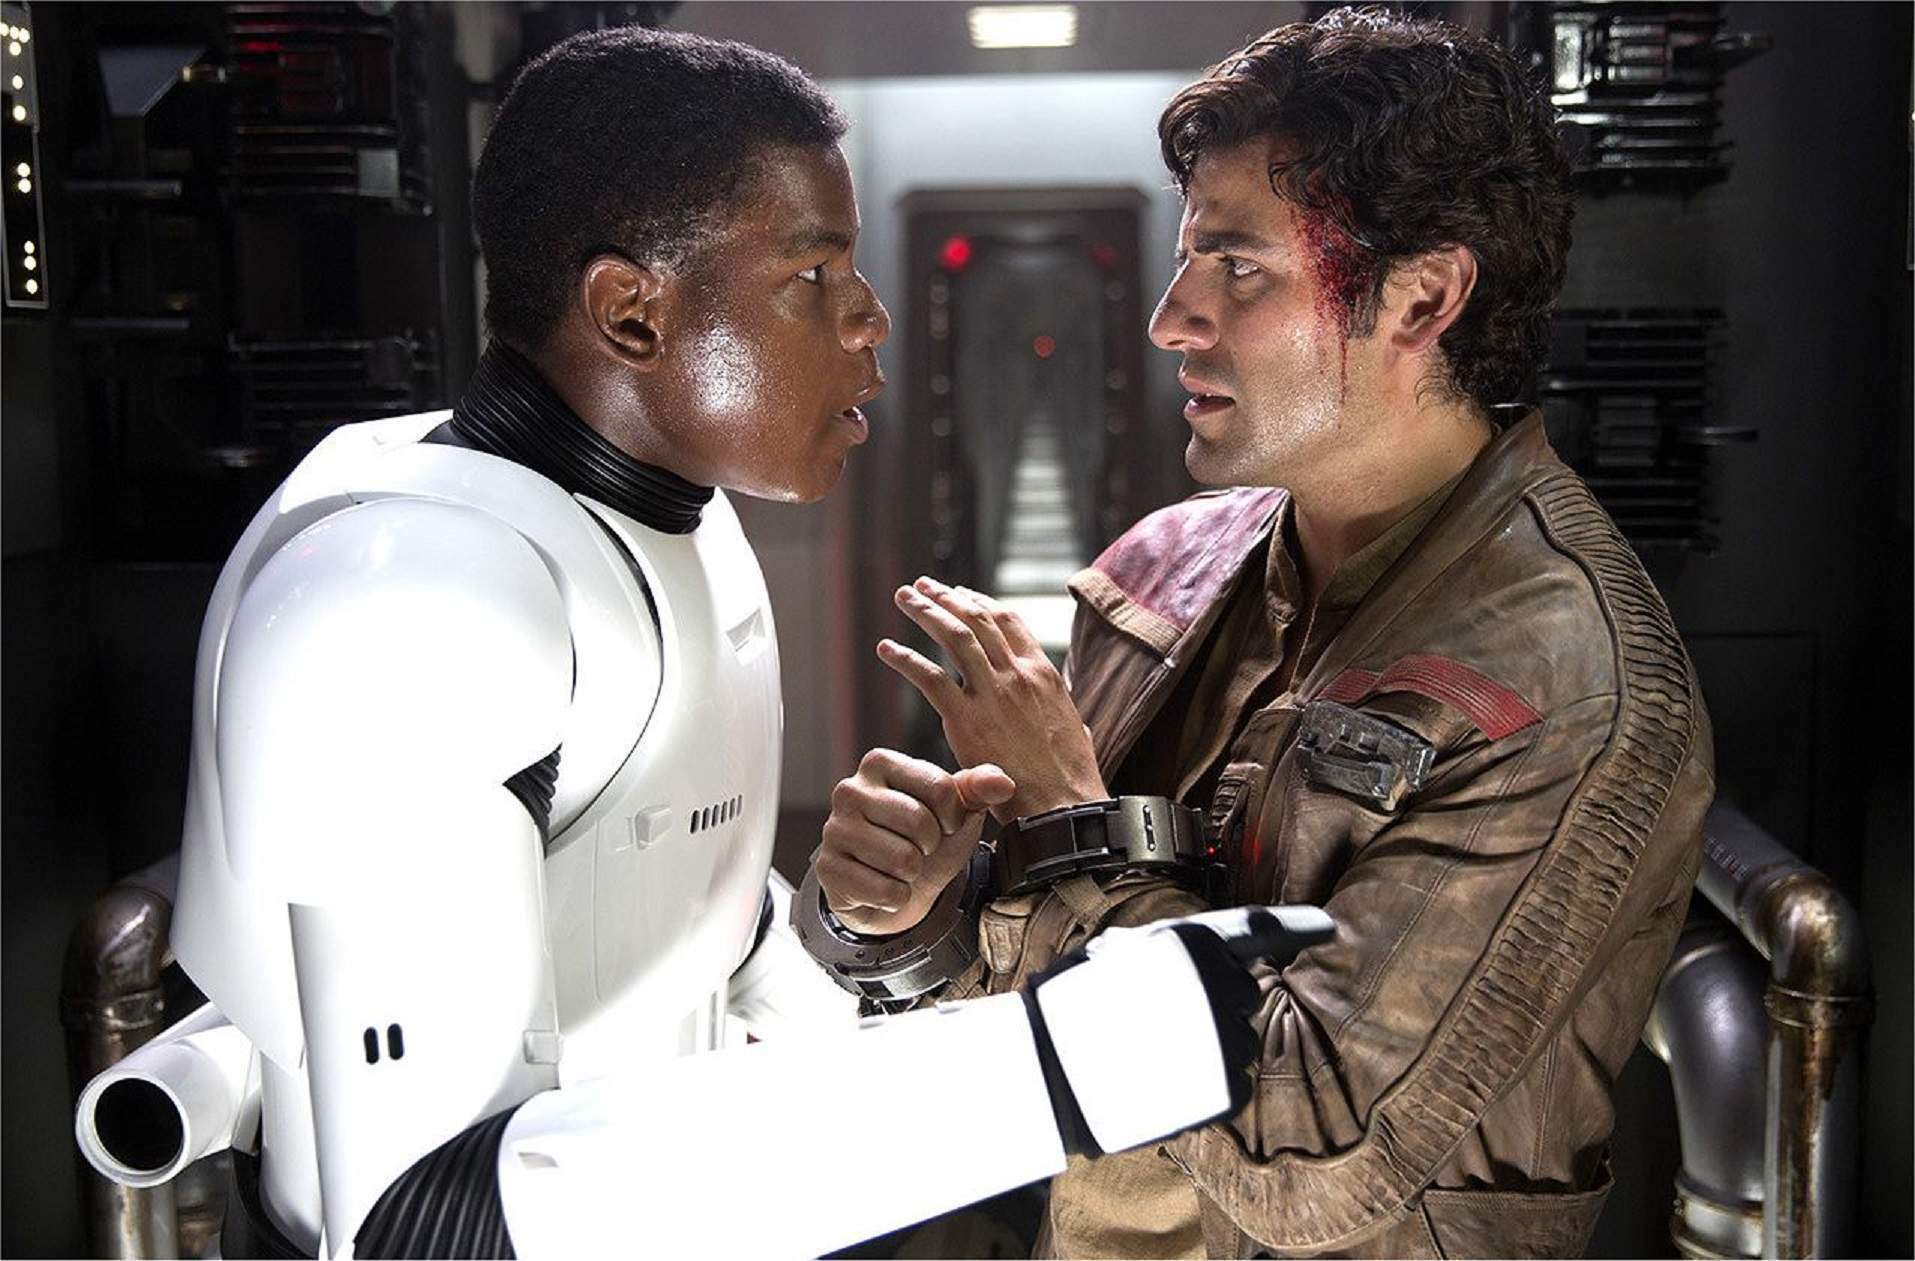 Star Wars, queer representation and the mainstreaming of slash